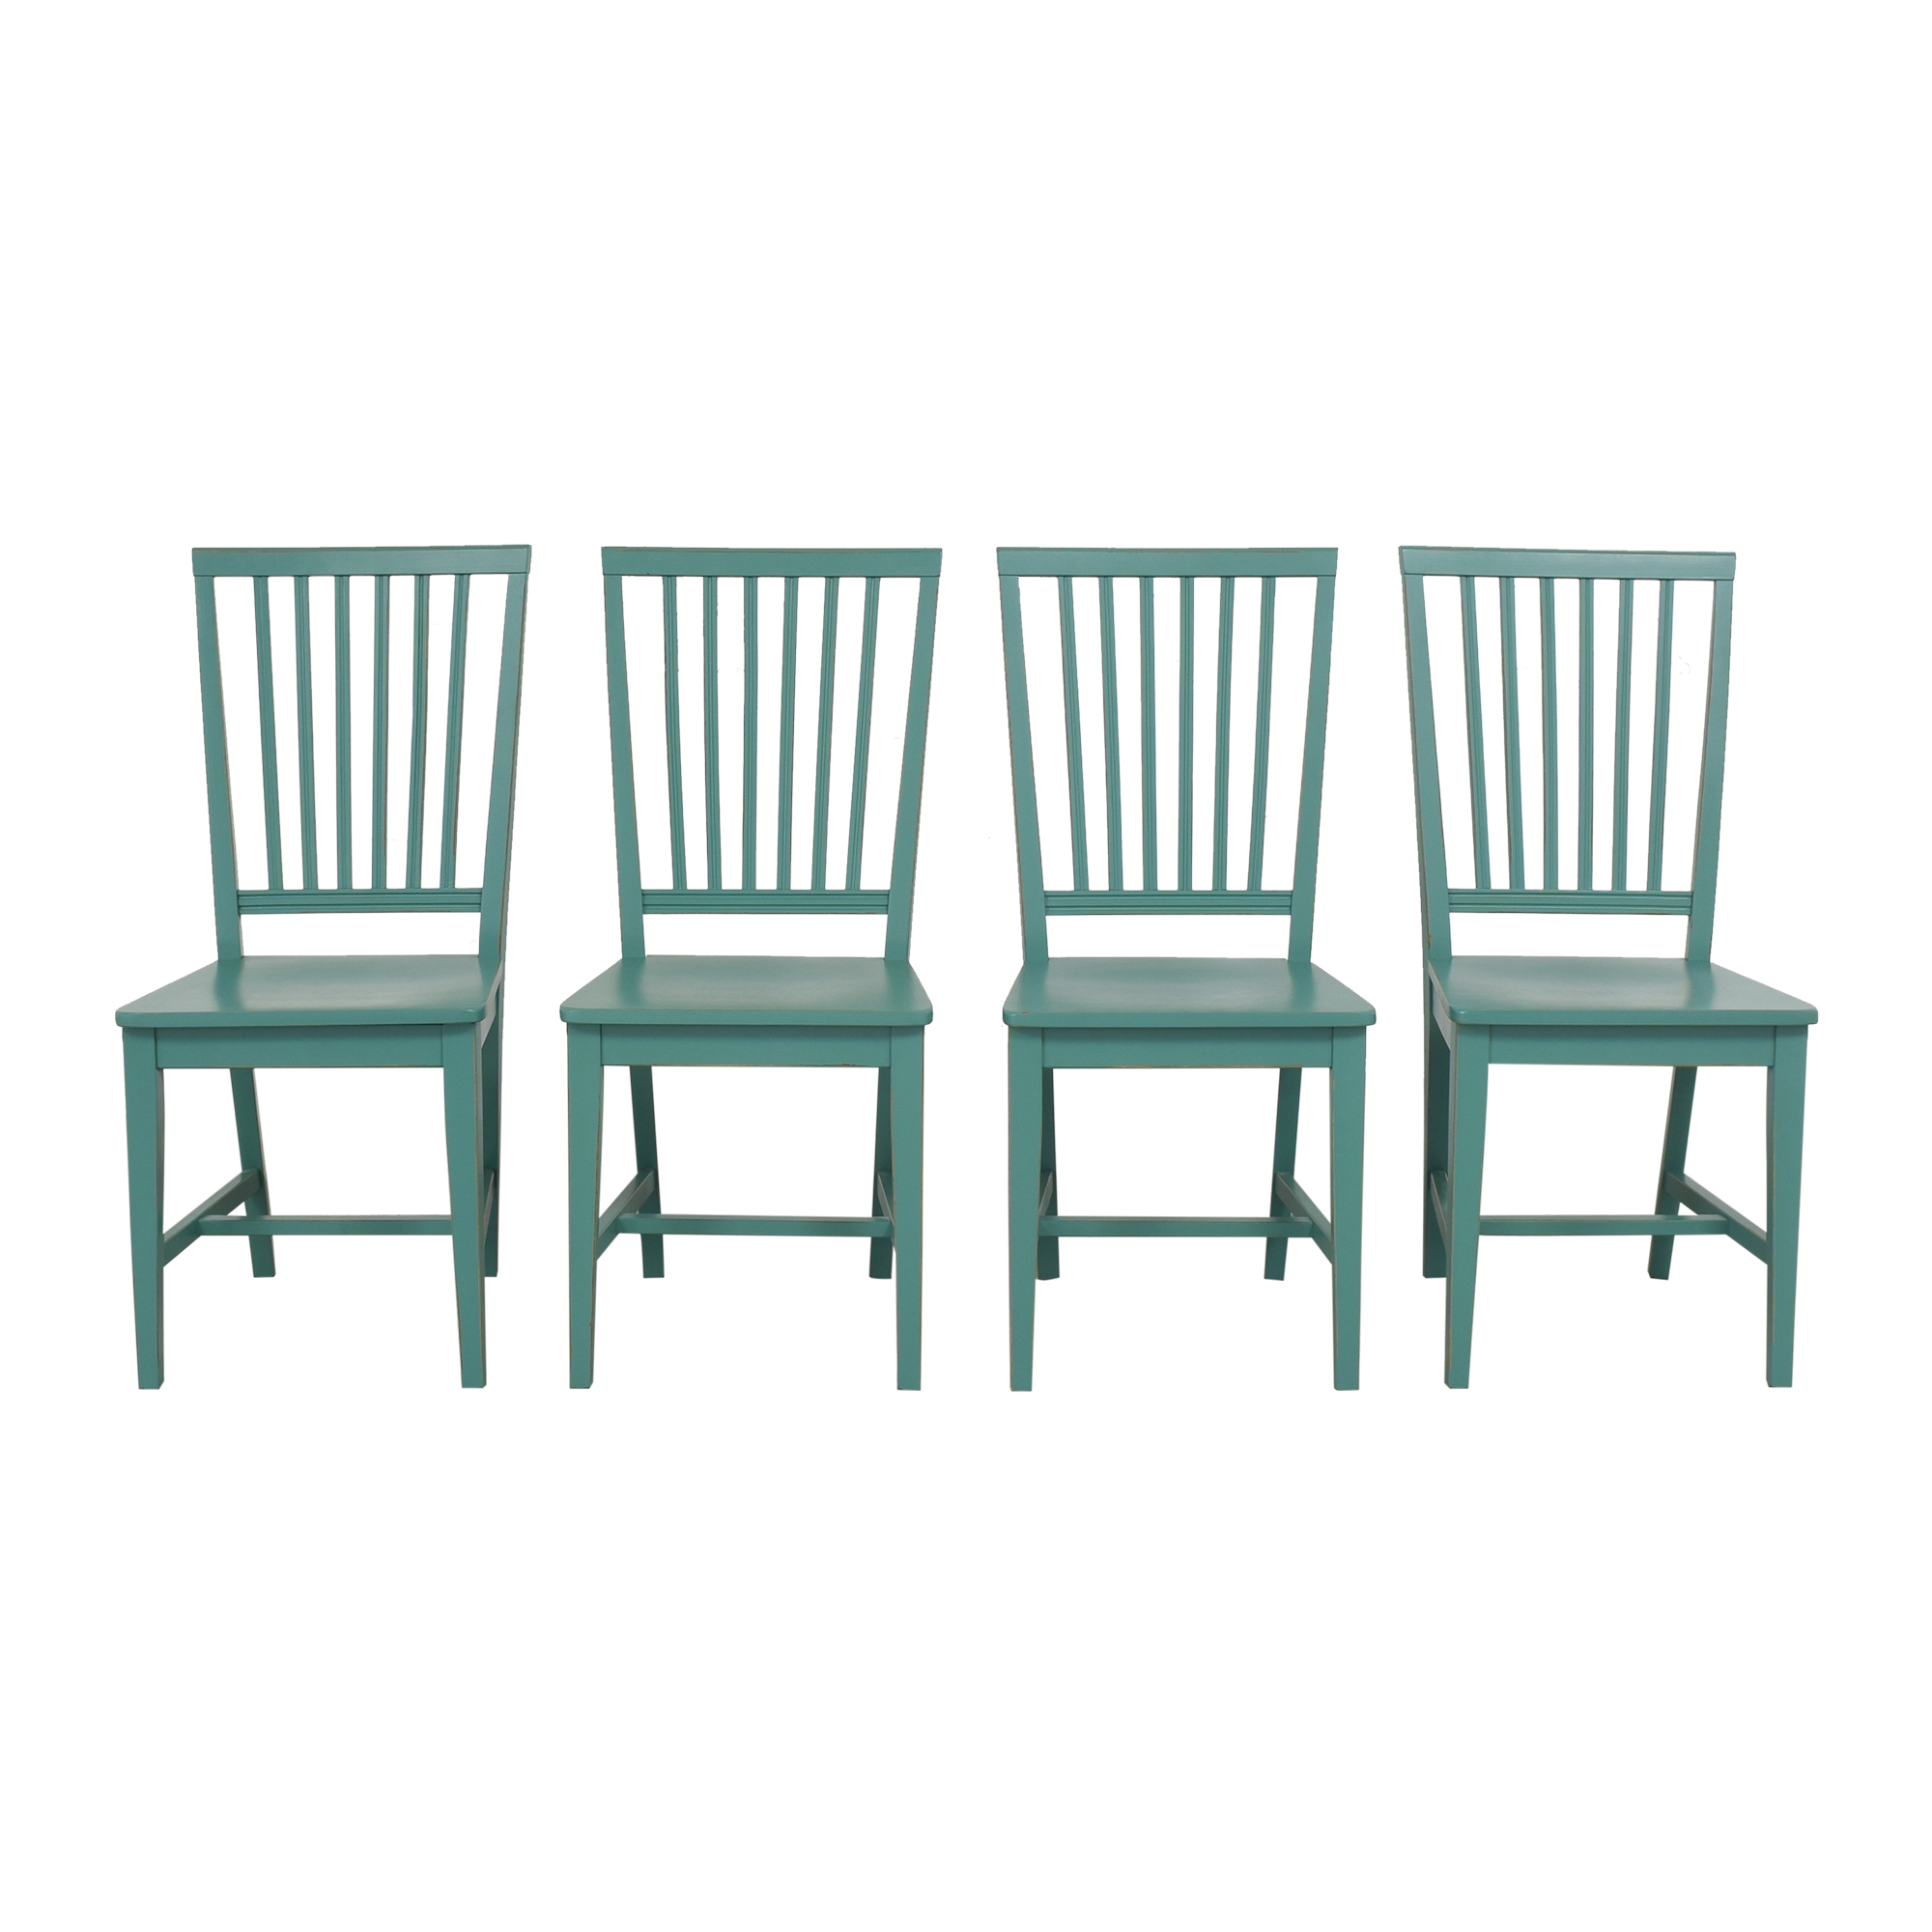 buy Crate & Barrel Village Dining Chairs Crate & Barrel Chairs